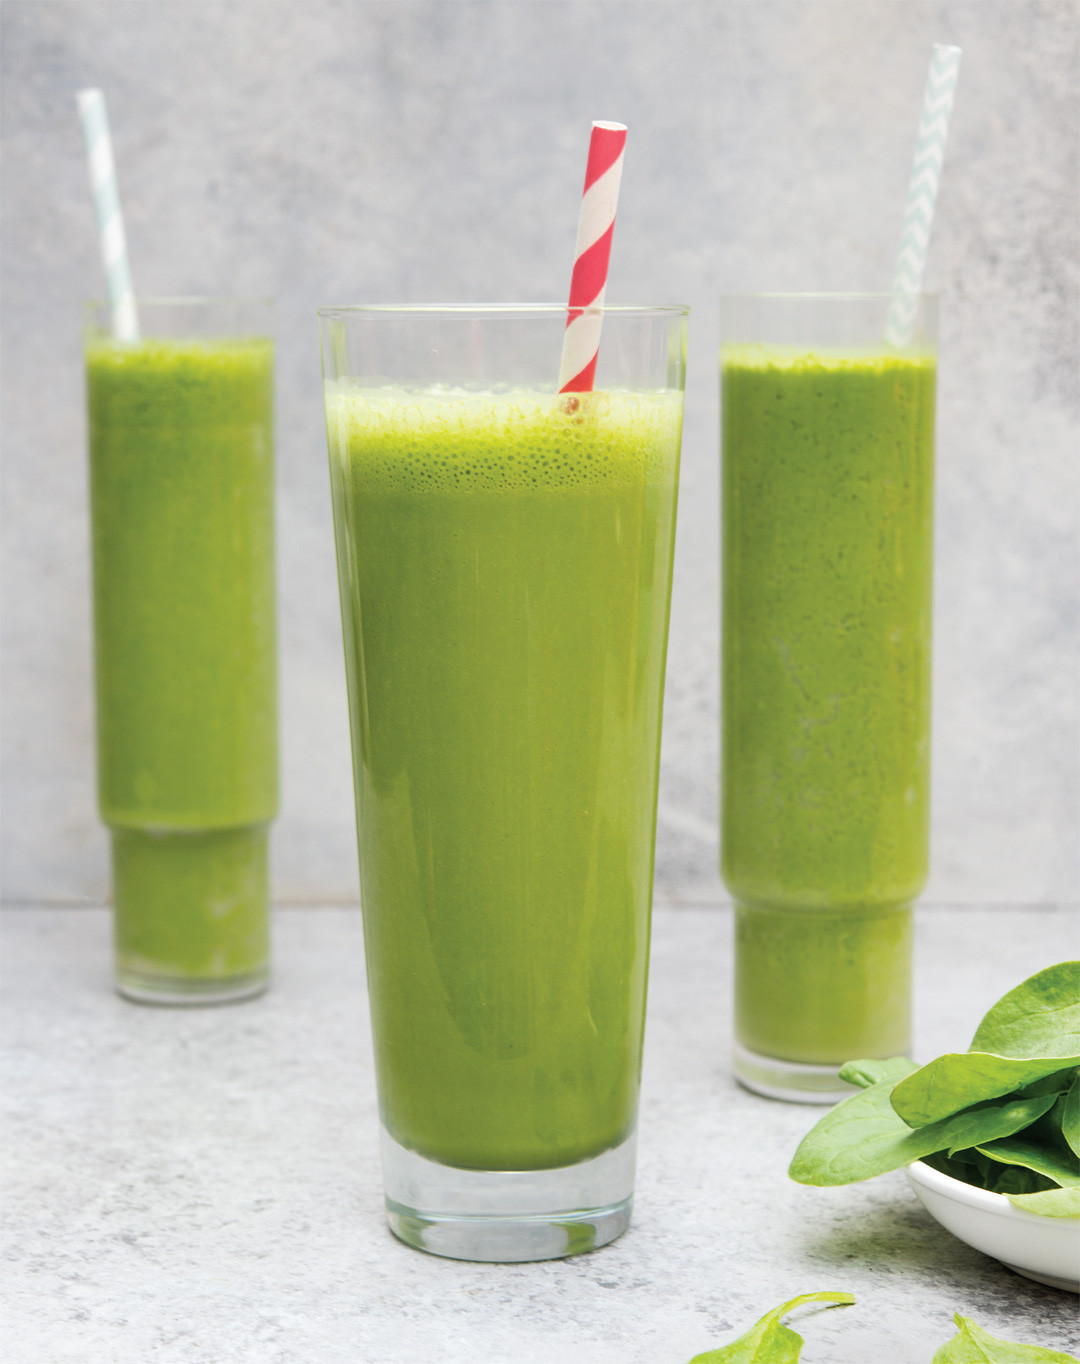 Healthy Low Carb Smoothies  How to Make Low Carb Green Smoothie